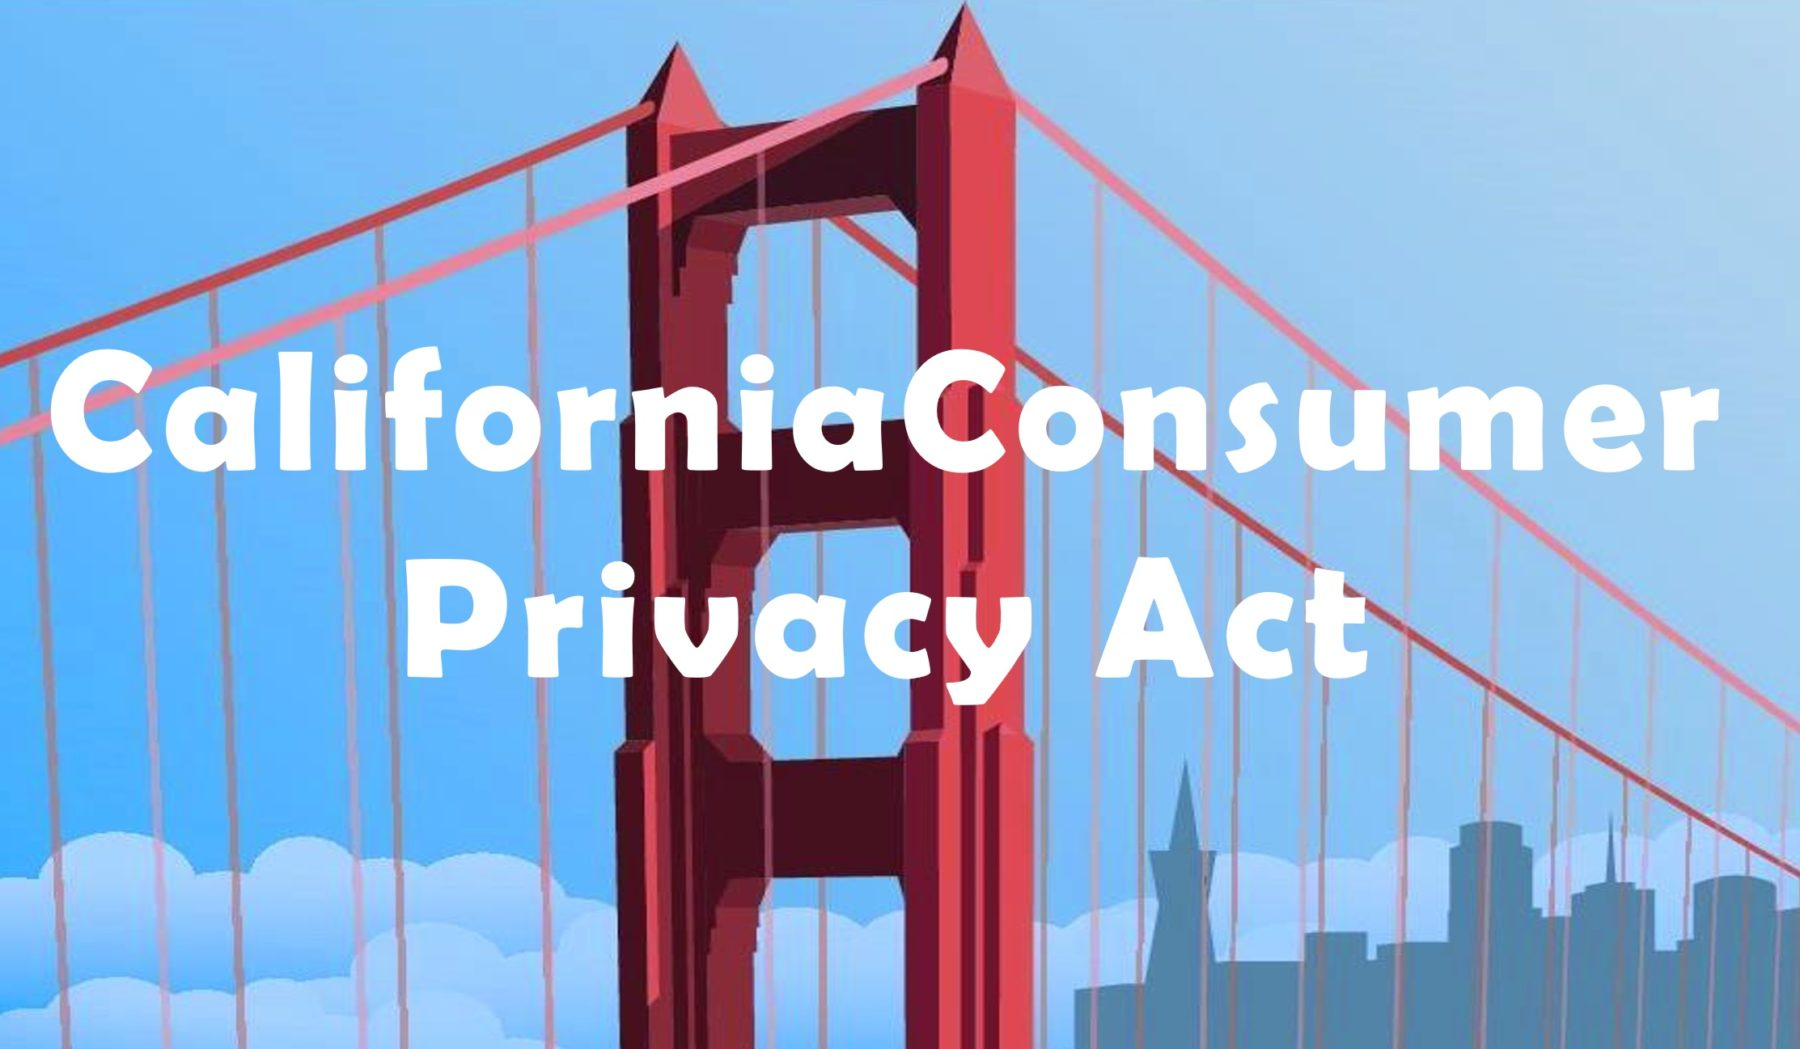 California-Consumer-Privacy-Act-of-2018-03-1800x1049